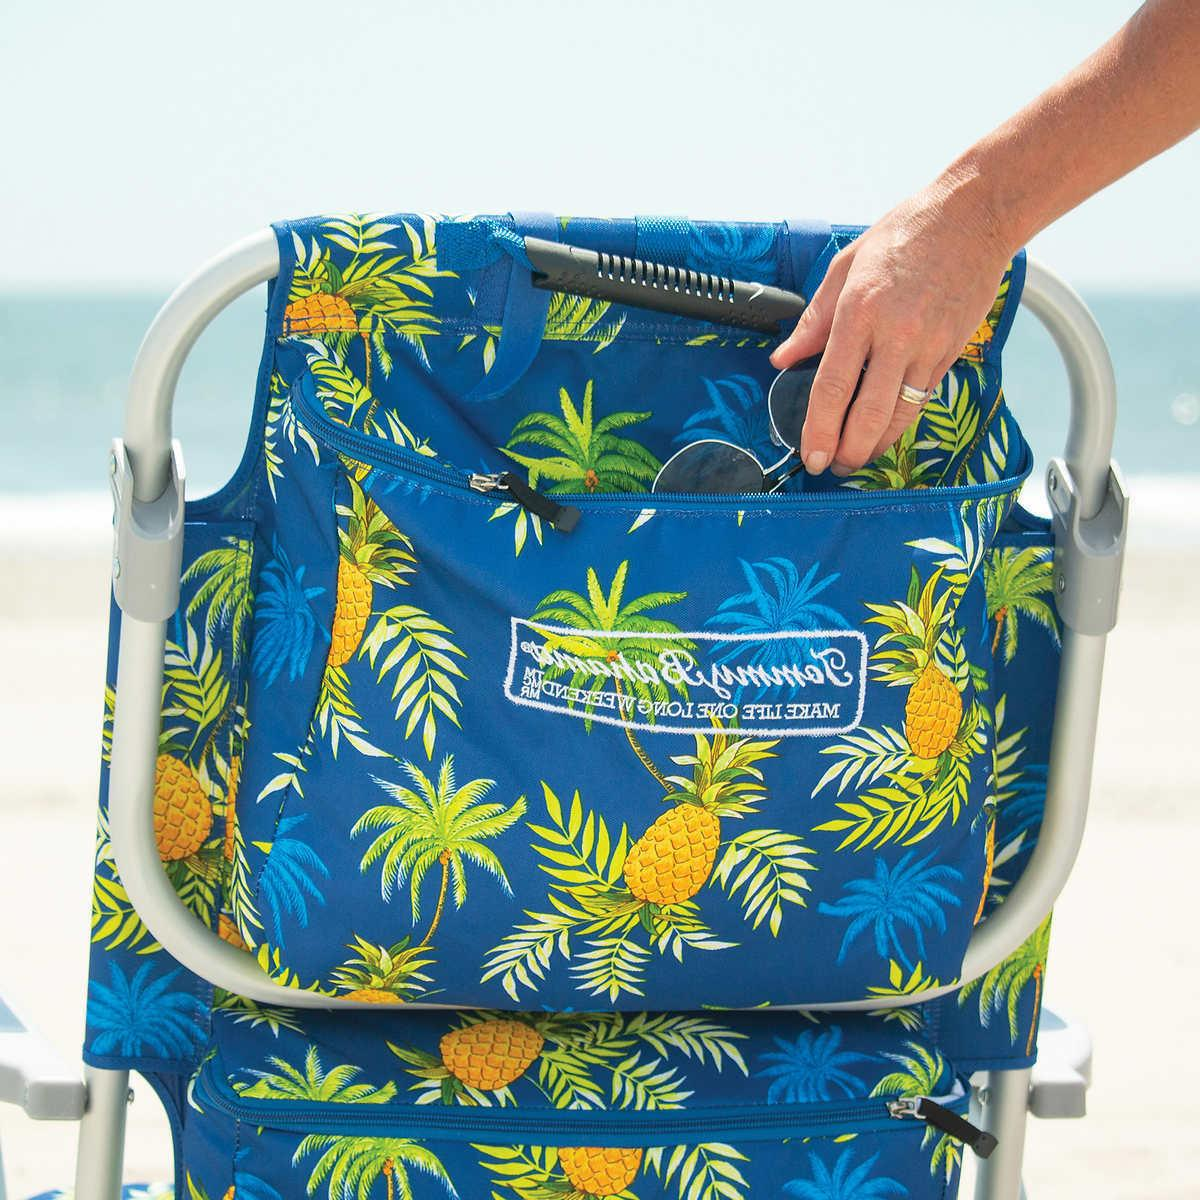 Tommy Bahama Beach 2020 Blue with Pineapple Print NEW!